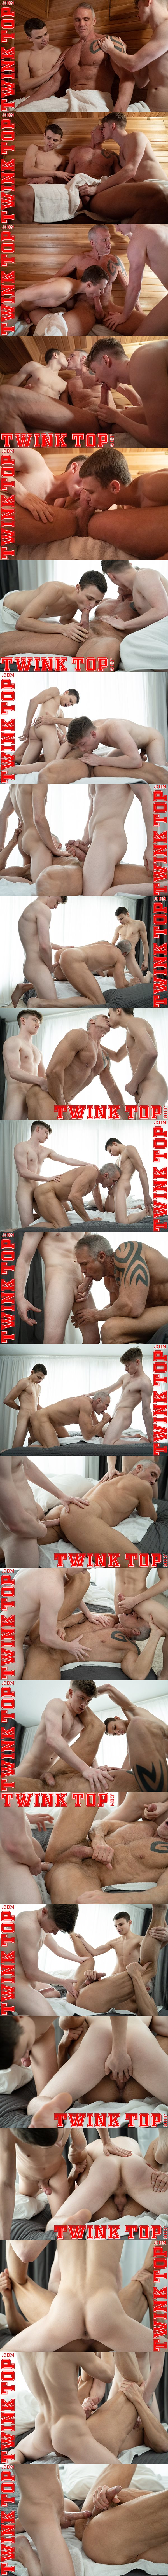 Twink Austin Young and Felix Maze tag team muscle daddy Dallas Steele in an older younger scene before they creampie Dallas in Extra Innings Tag Team at Twinktop 01